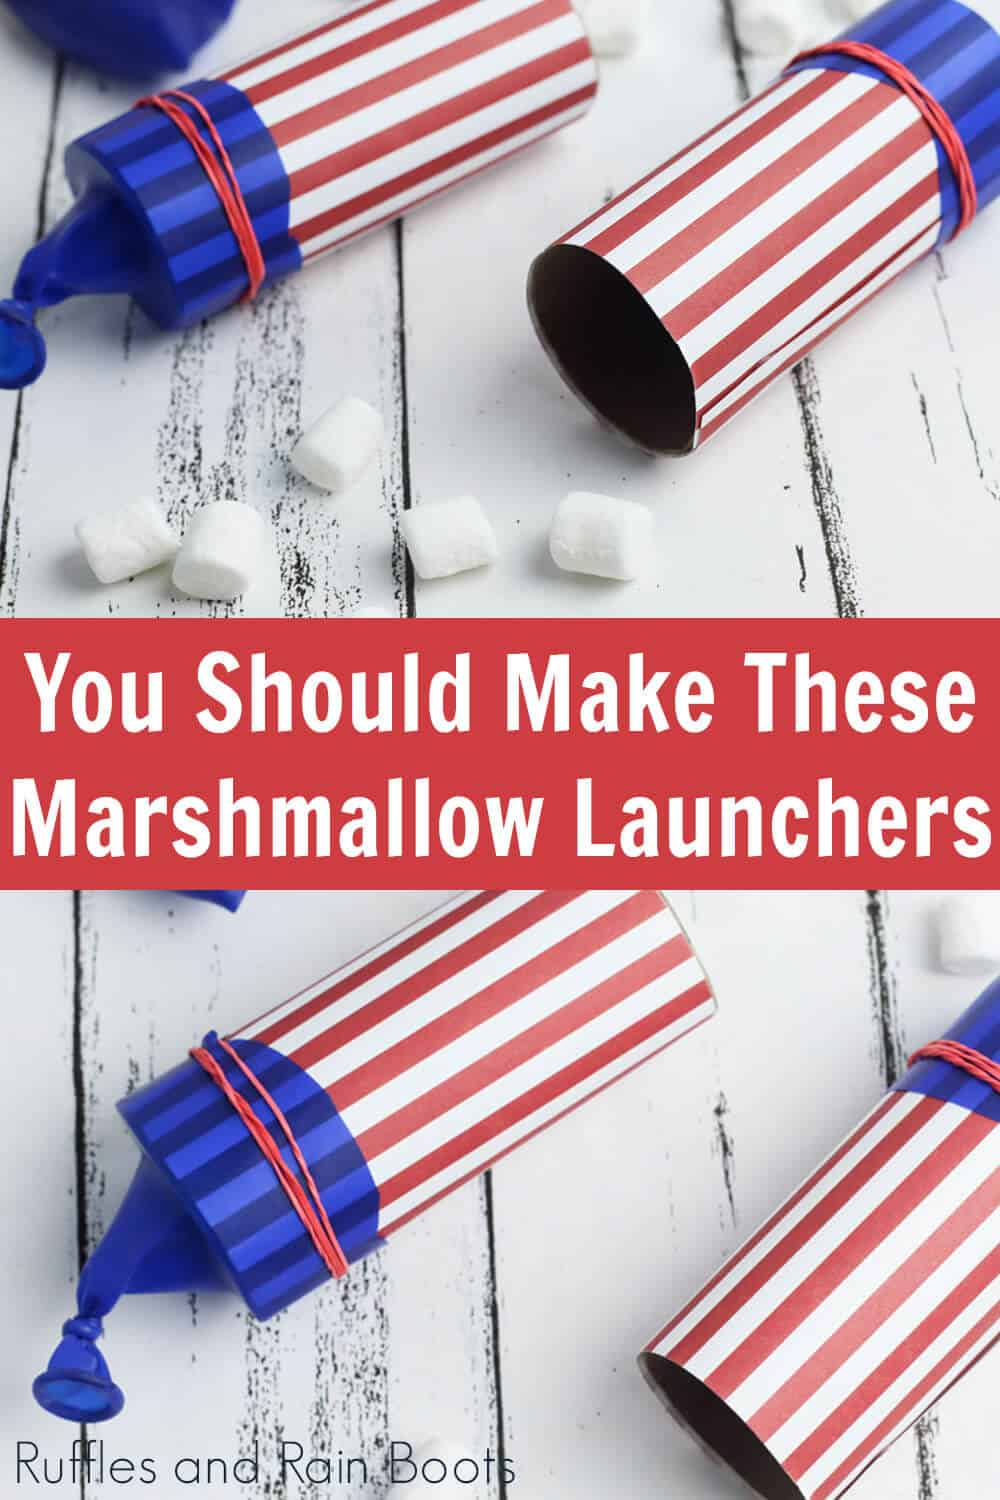 photo collage of marshmallow shooters 4th of july party ideas with text which reads you should make these marshmallow launchers